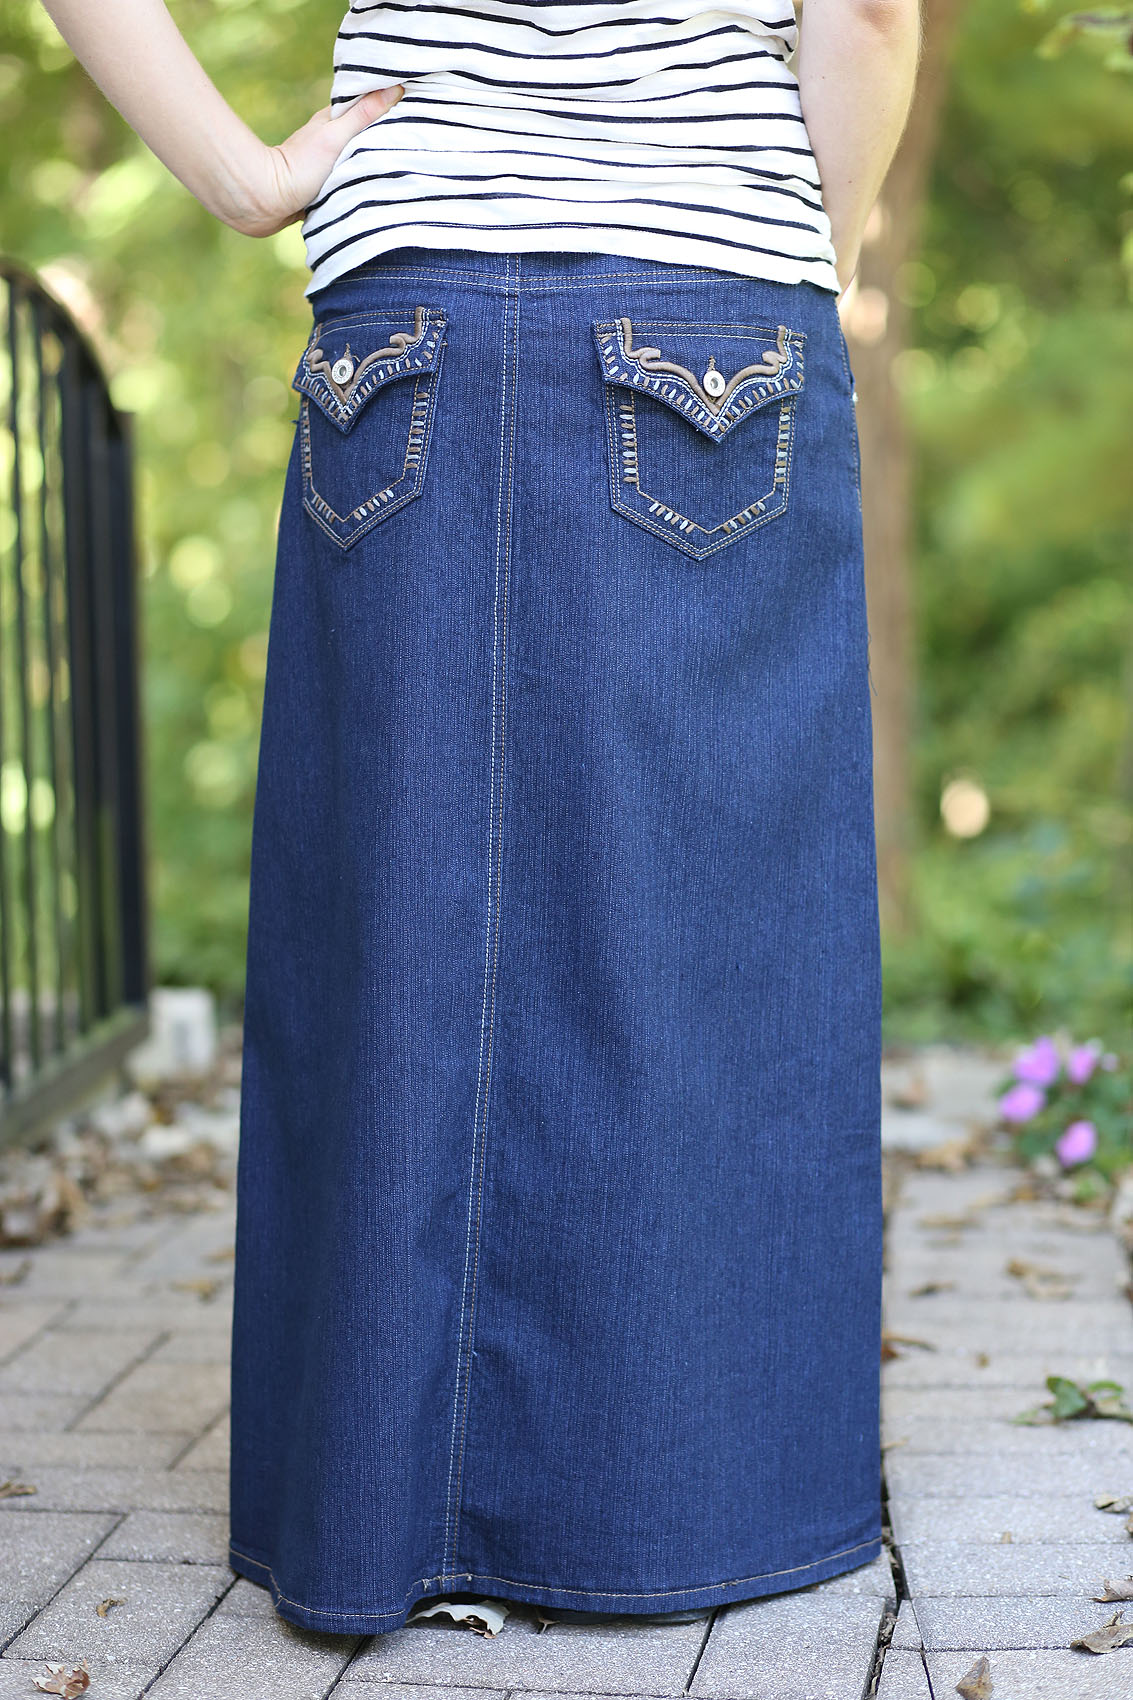 Cato Women's Long Denim Jean Skirt Size 8 Front Pockets ... |Western Long Denim Skirts Modest